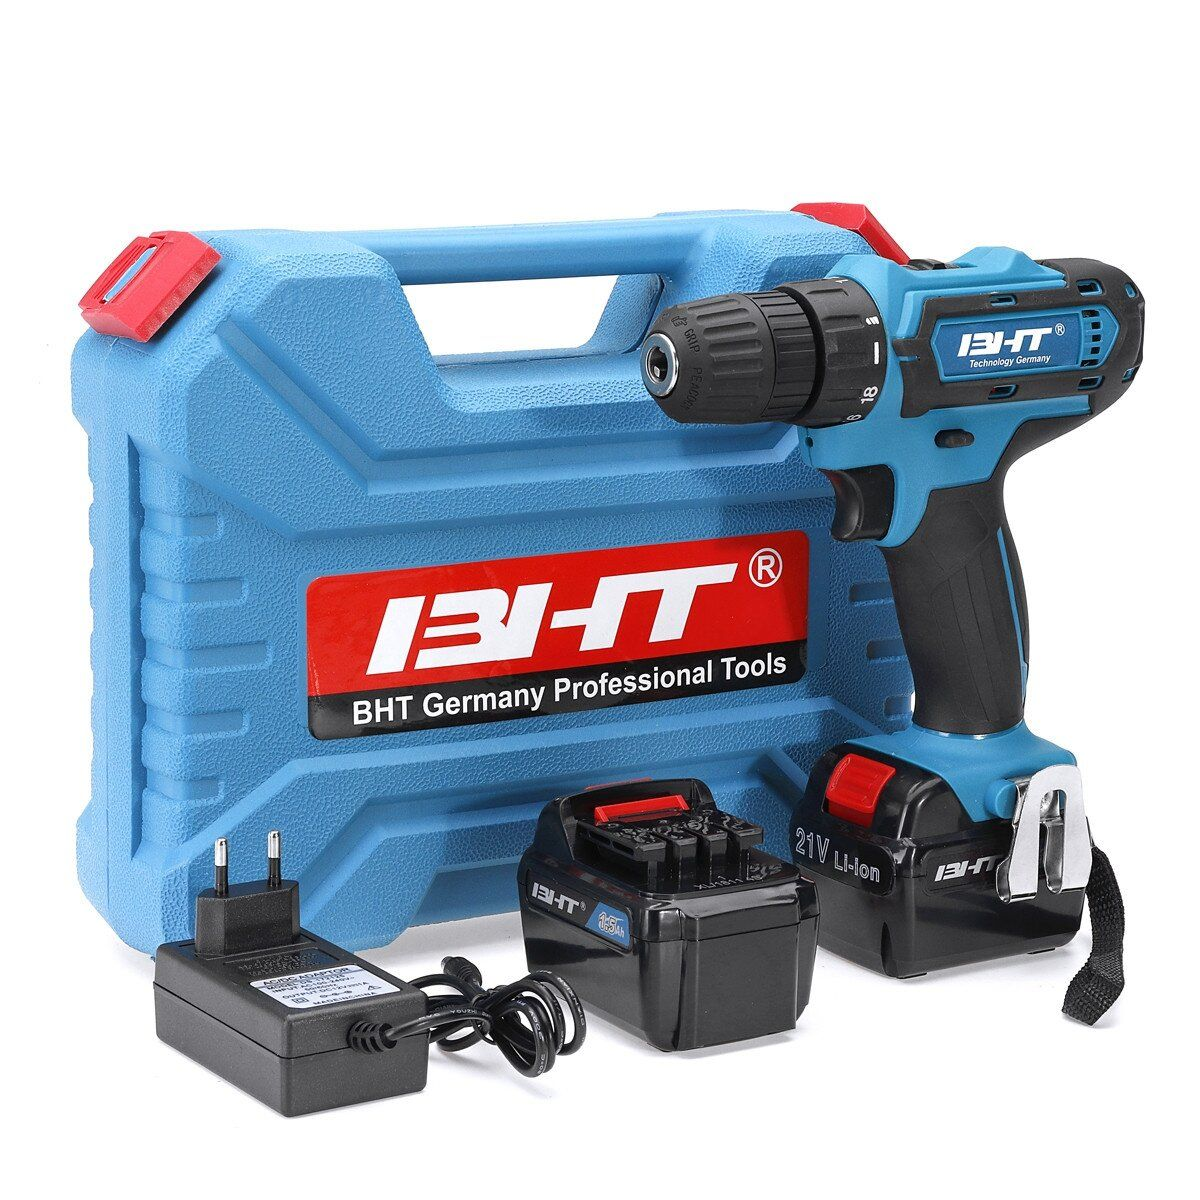 21V 2 Speed Brushless Li ion Electric Drill Cordless Impact Drill Tools 35Nm 2 Speeed Power Drills